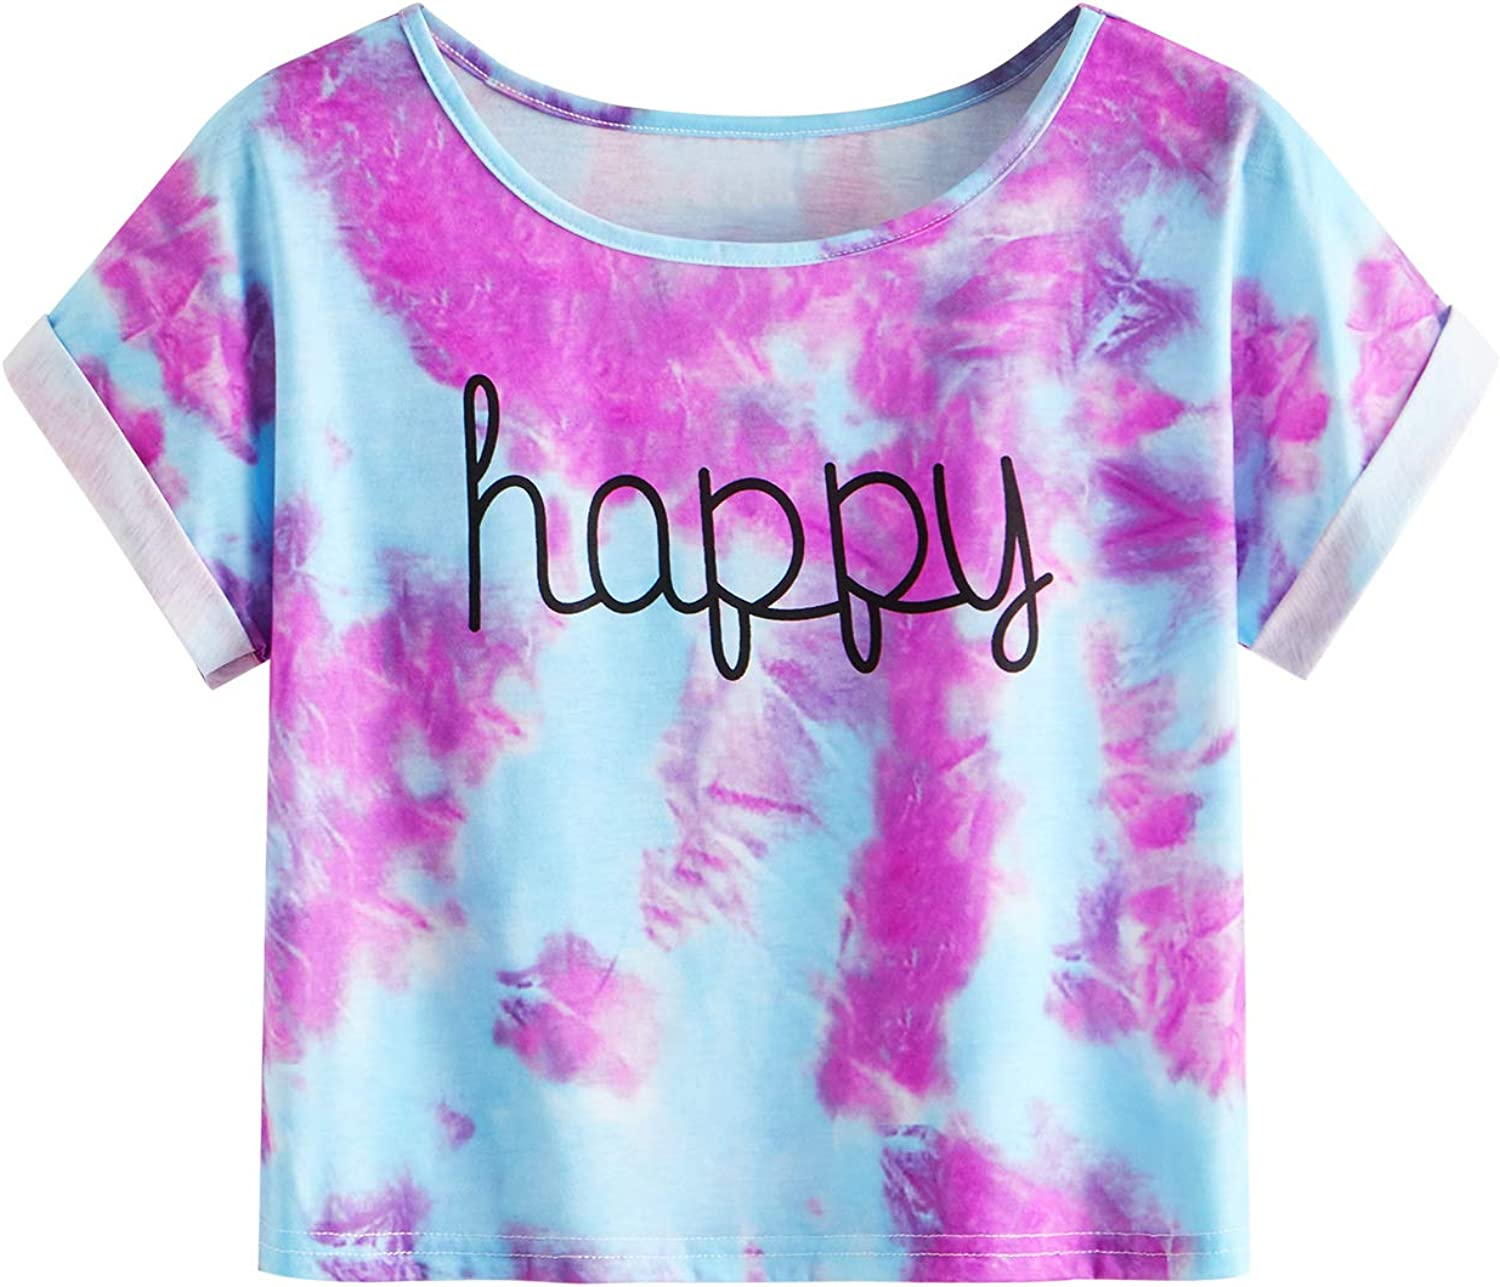 SweatyRocks Women's Short Sleeve Tie Dye Letter Print Crop Top T Shirt